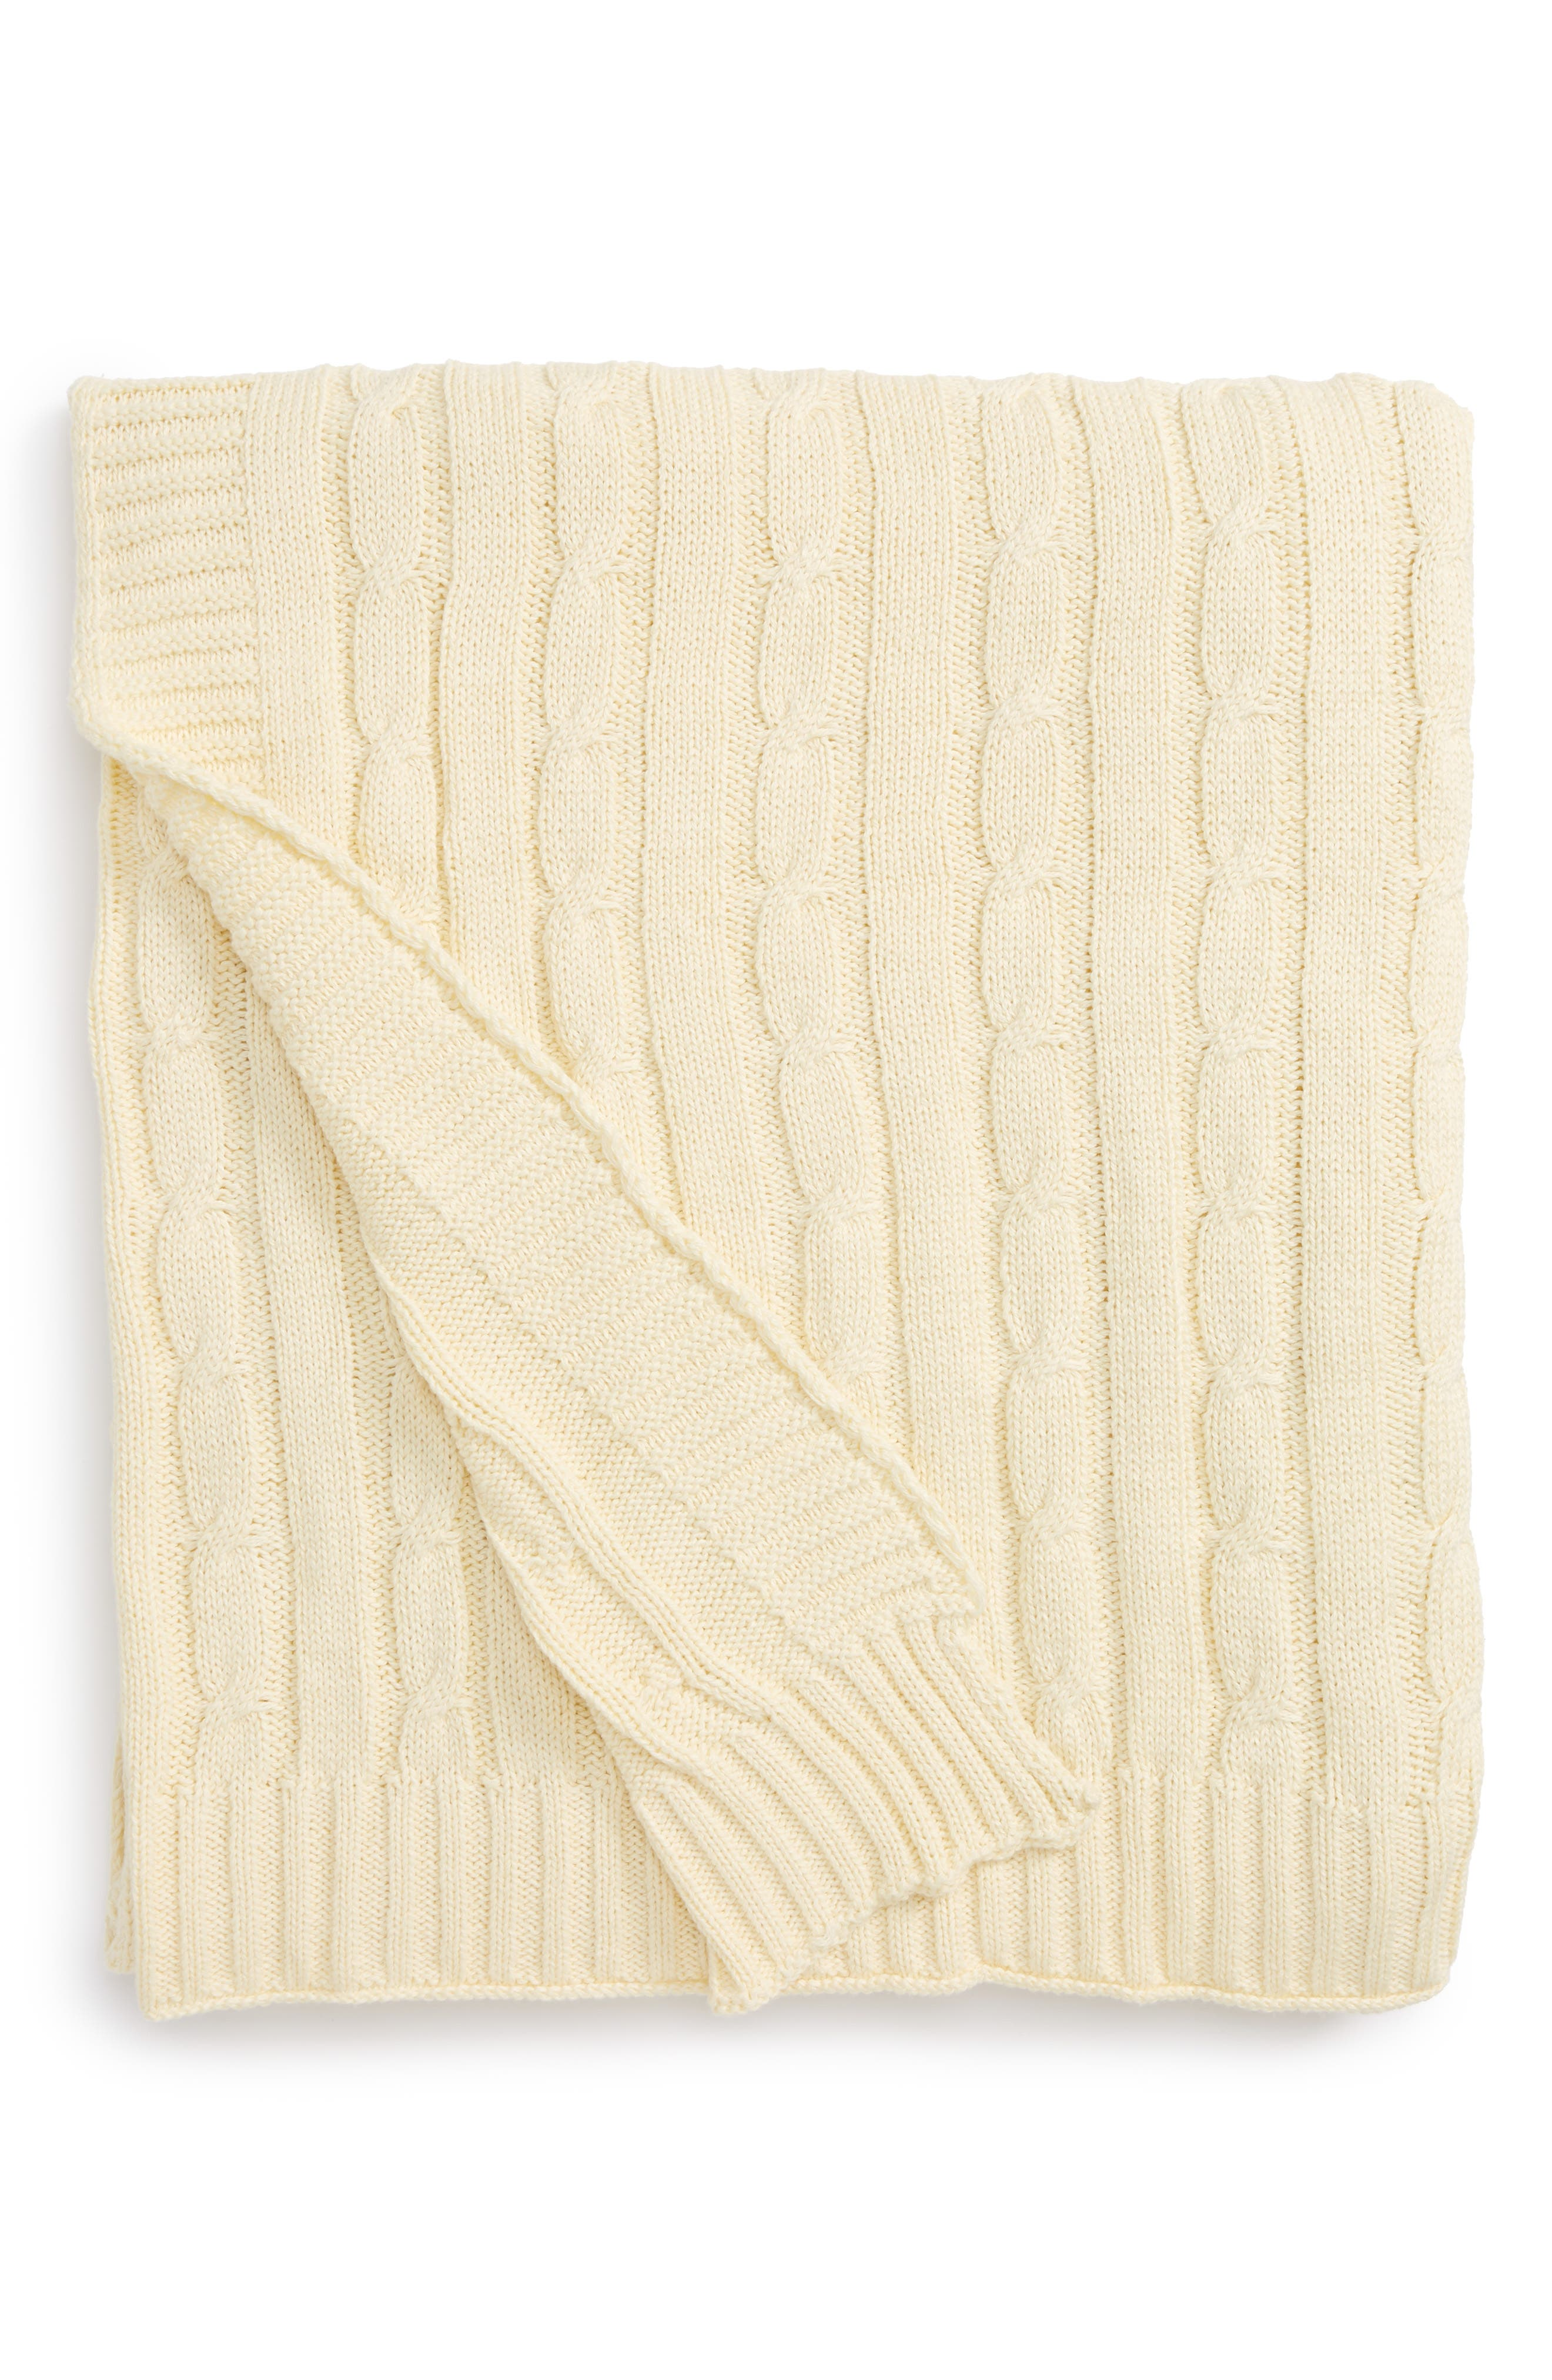 RIZZY HOME, Cable Knit Cotton Throw, Main thumbnail 1, color, 270